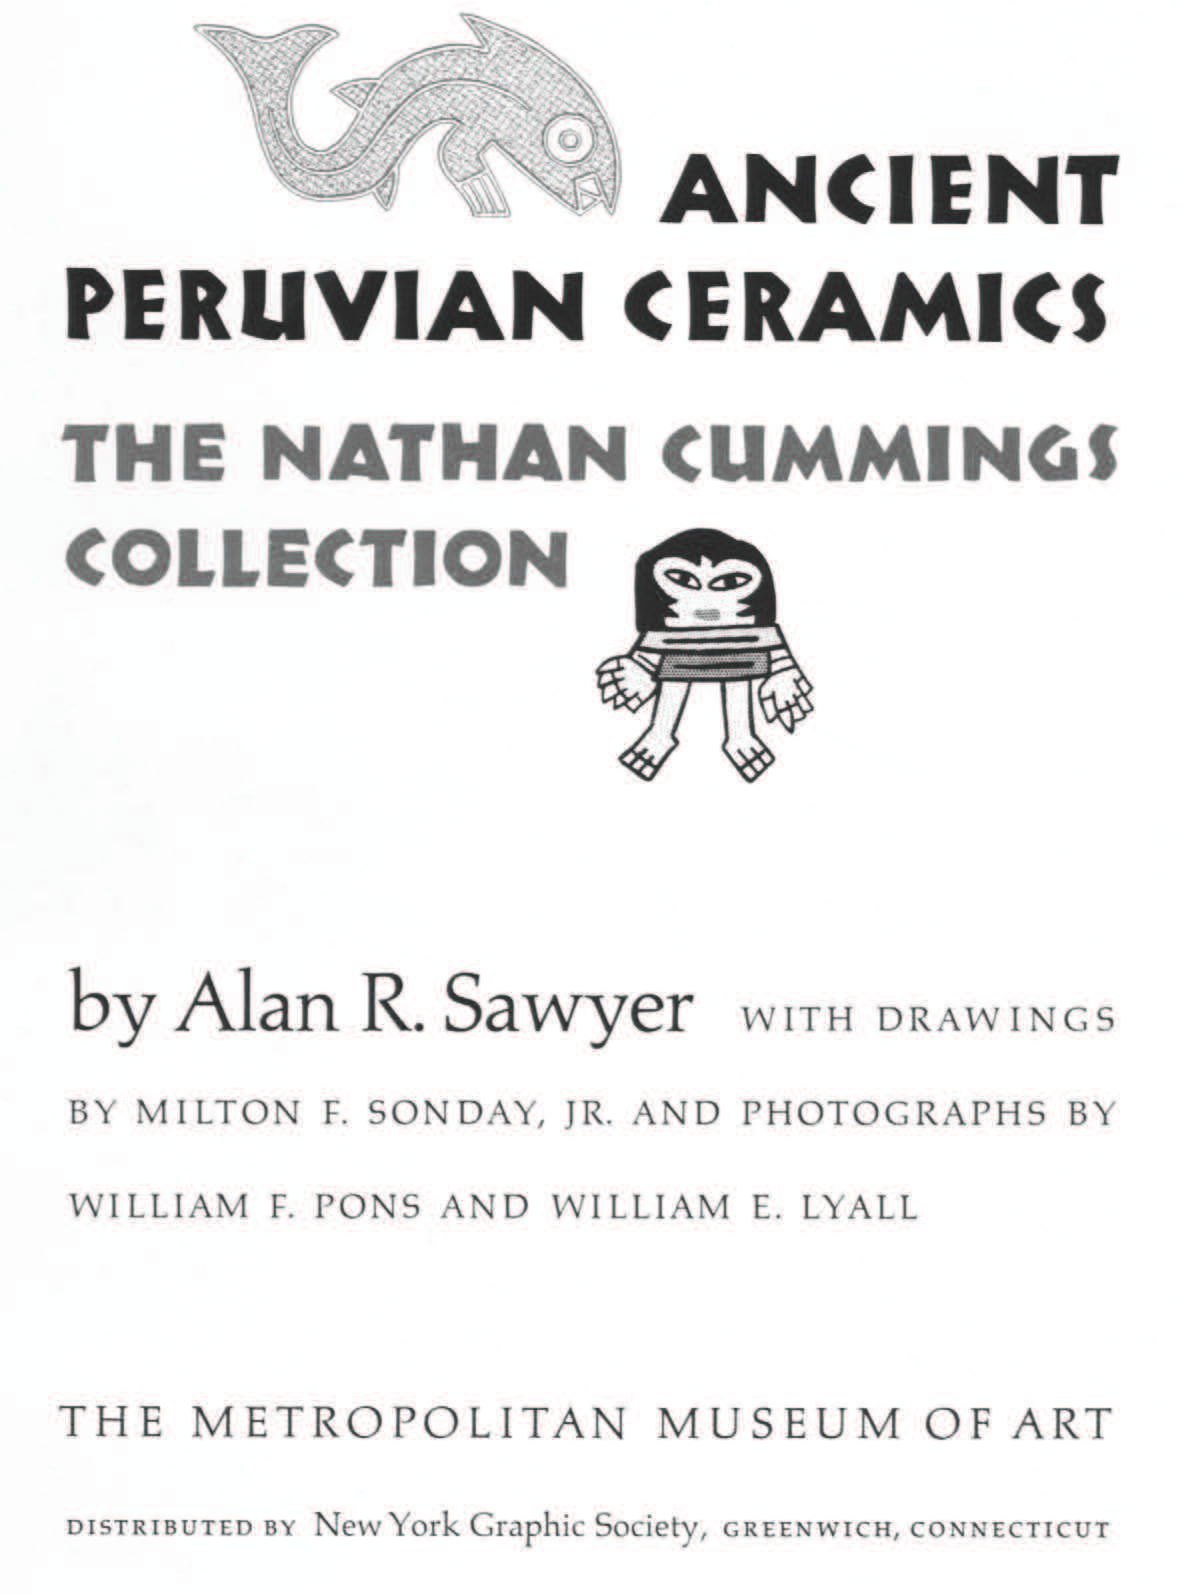 Ancient Peruvian Ceramics: The Nathan Cummings Collection / by Alan R. Sawyer with drawings by Milton F. Sonday, Jr. and photographs by William F. Pons and William E. Lyall. — New York : The Metropolitan Museum of Art, 1966